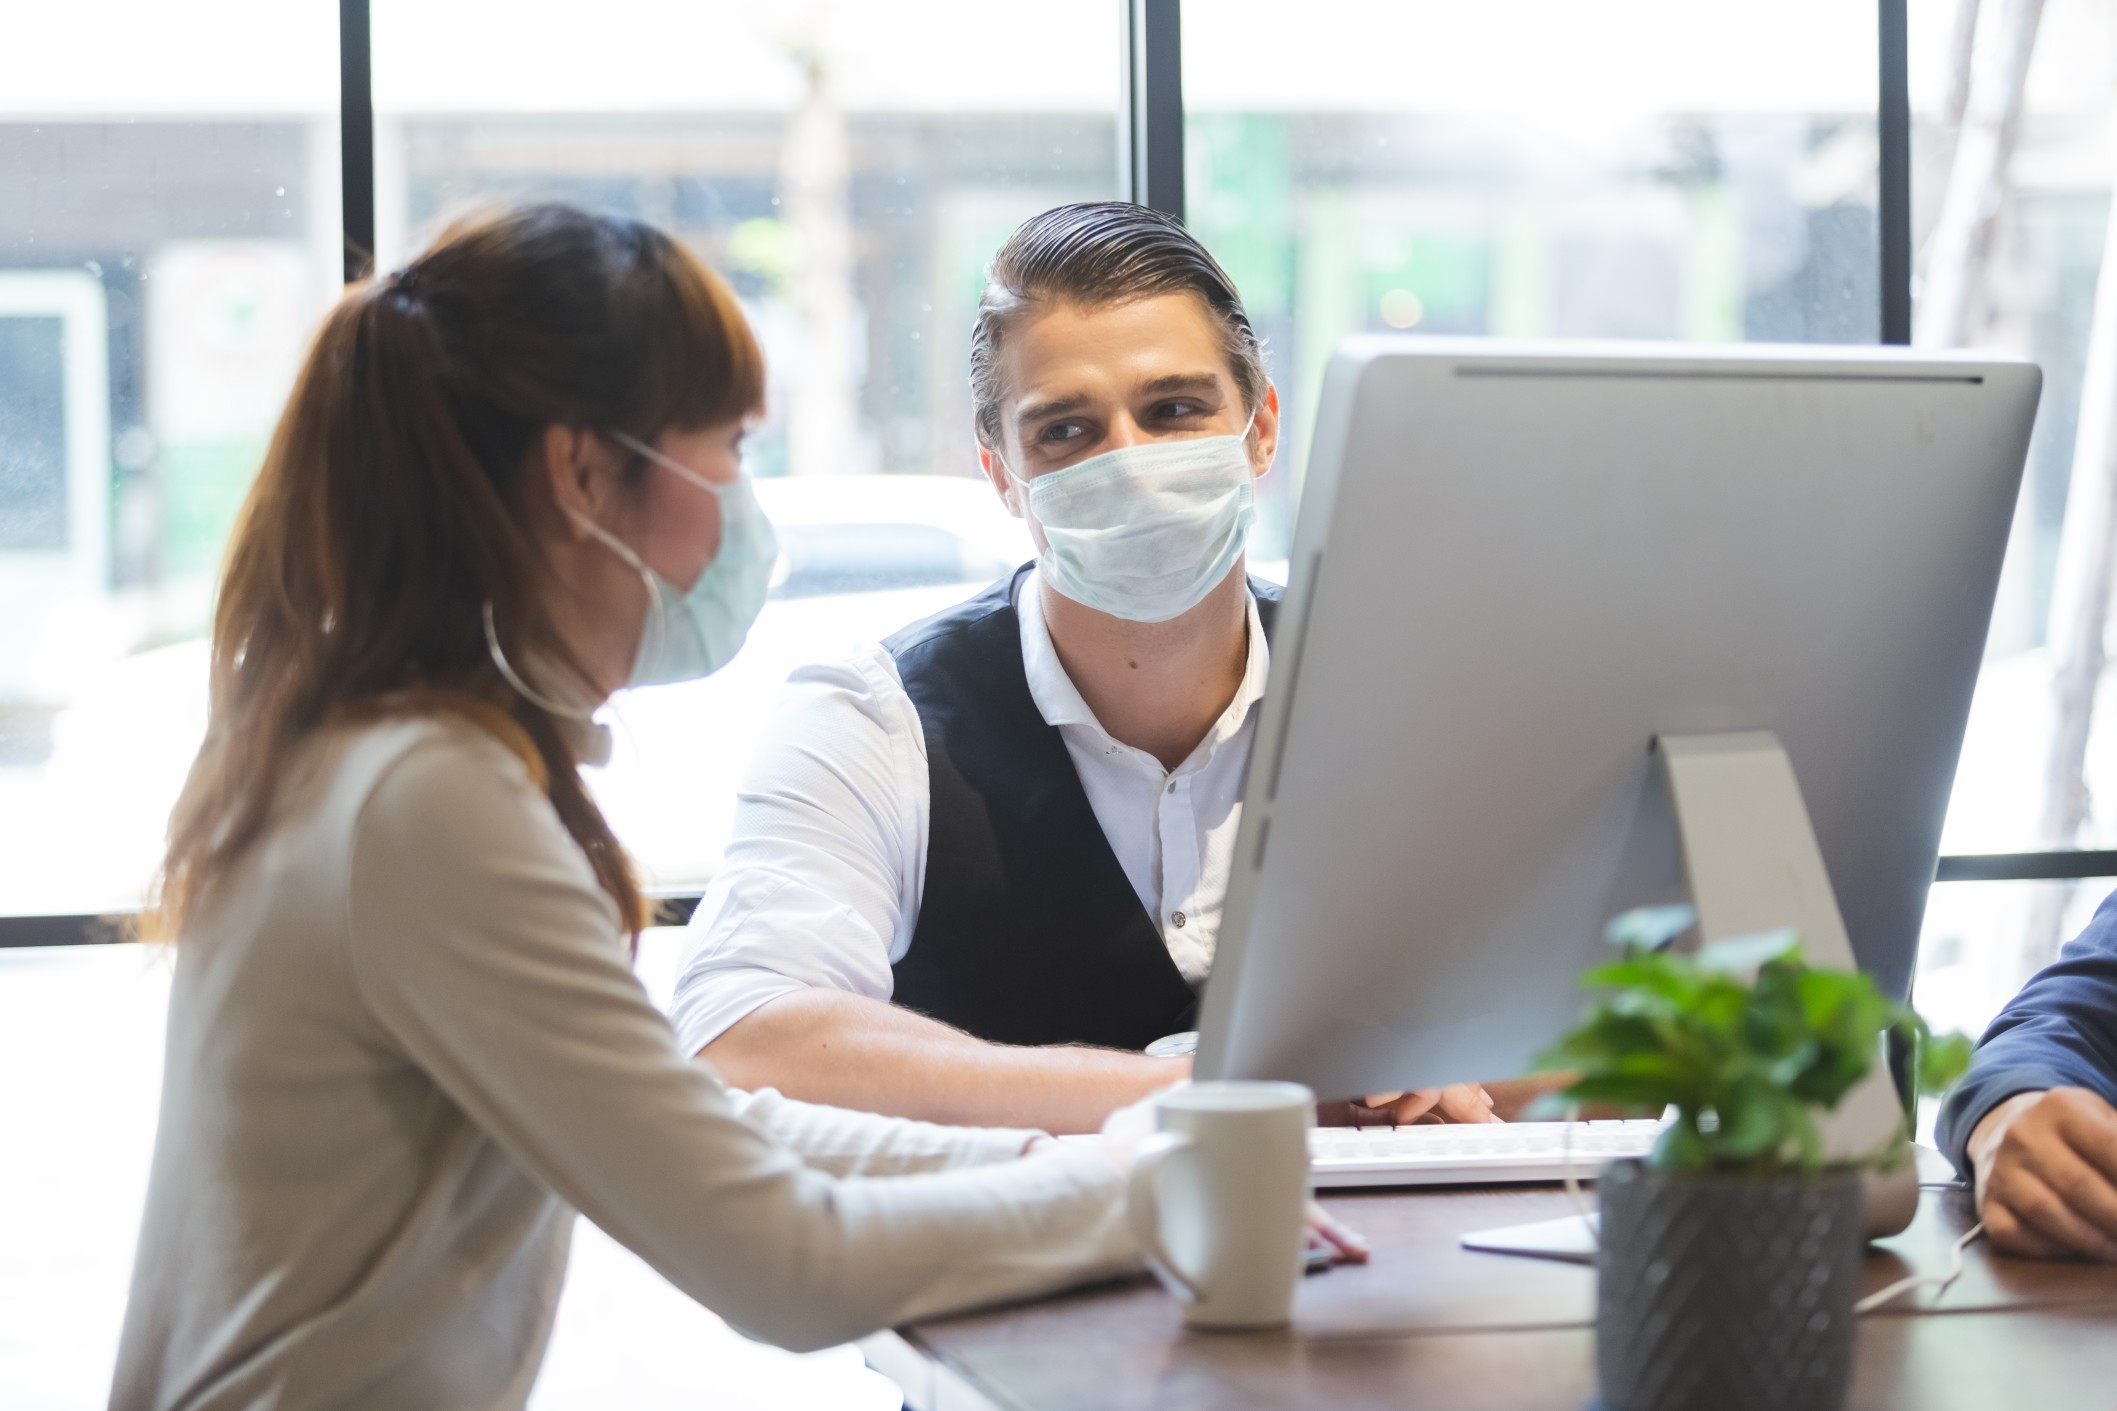 business-people-with-wearing-hygienic-mask-prophylactic-manager-talking-in-meeting-work-room-planning_t20_QKLKwA